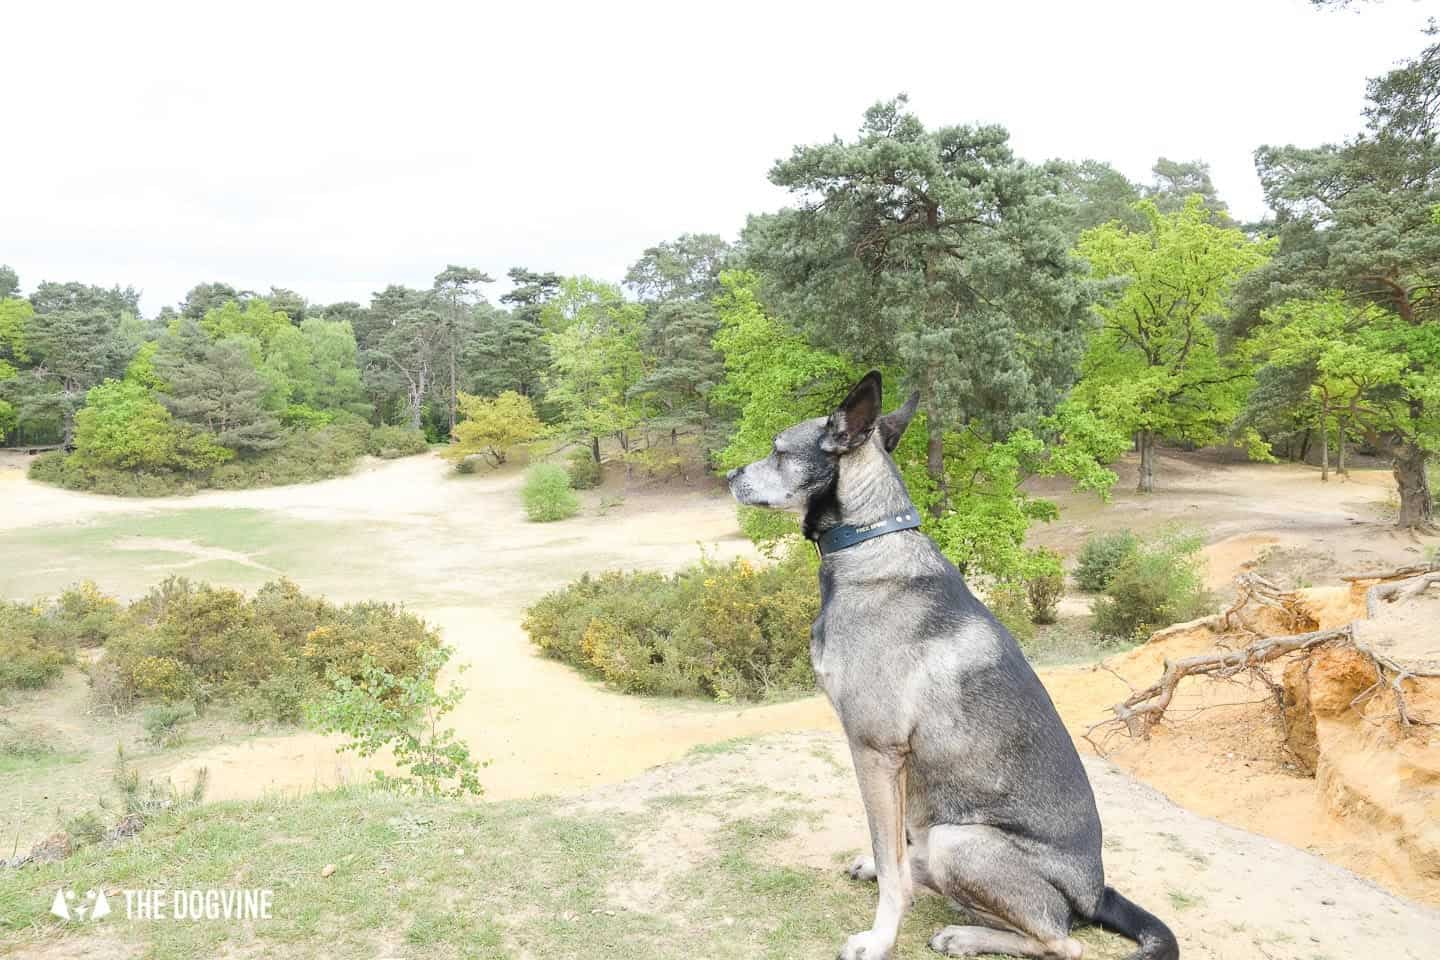 Oxshott Woods Dog Walks - Oxshott Heath and Woods Sandpit 3